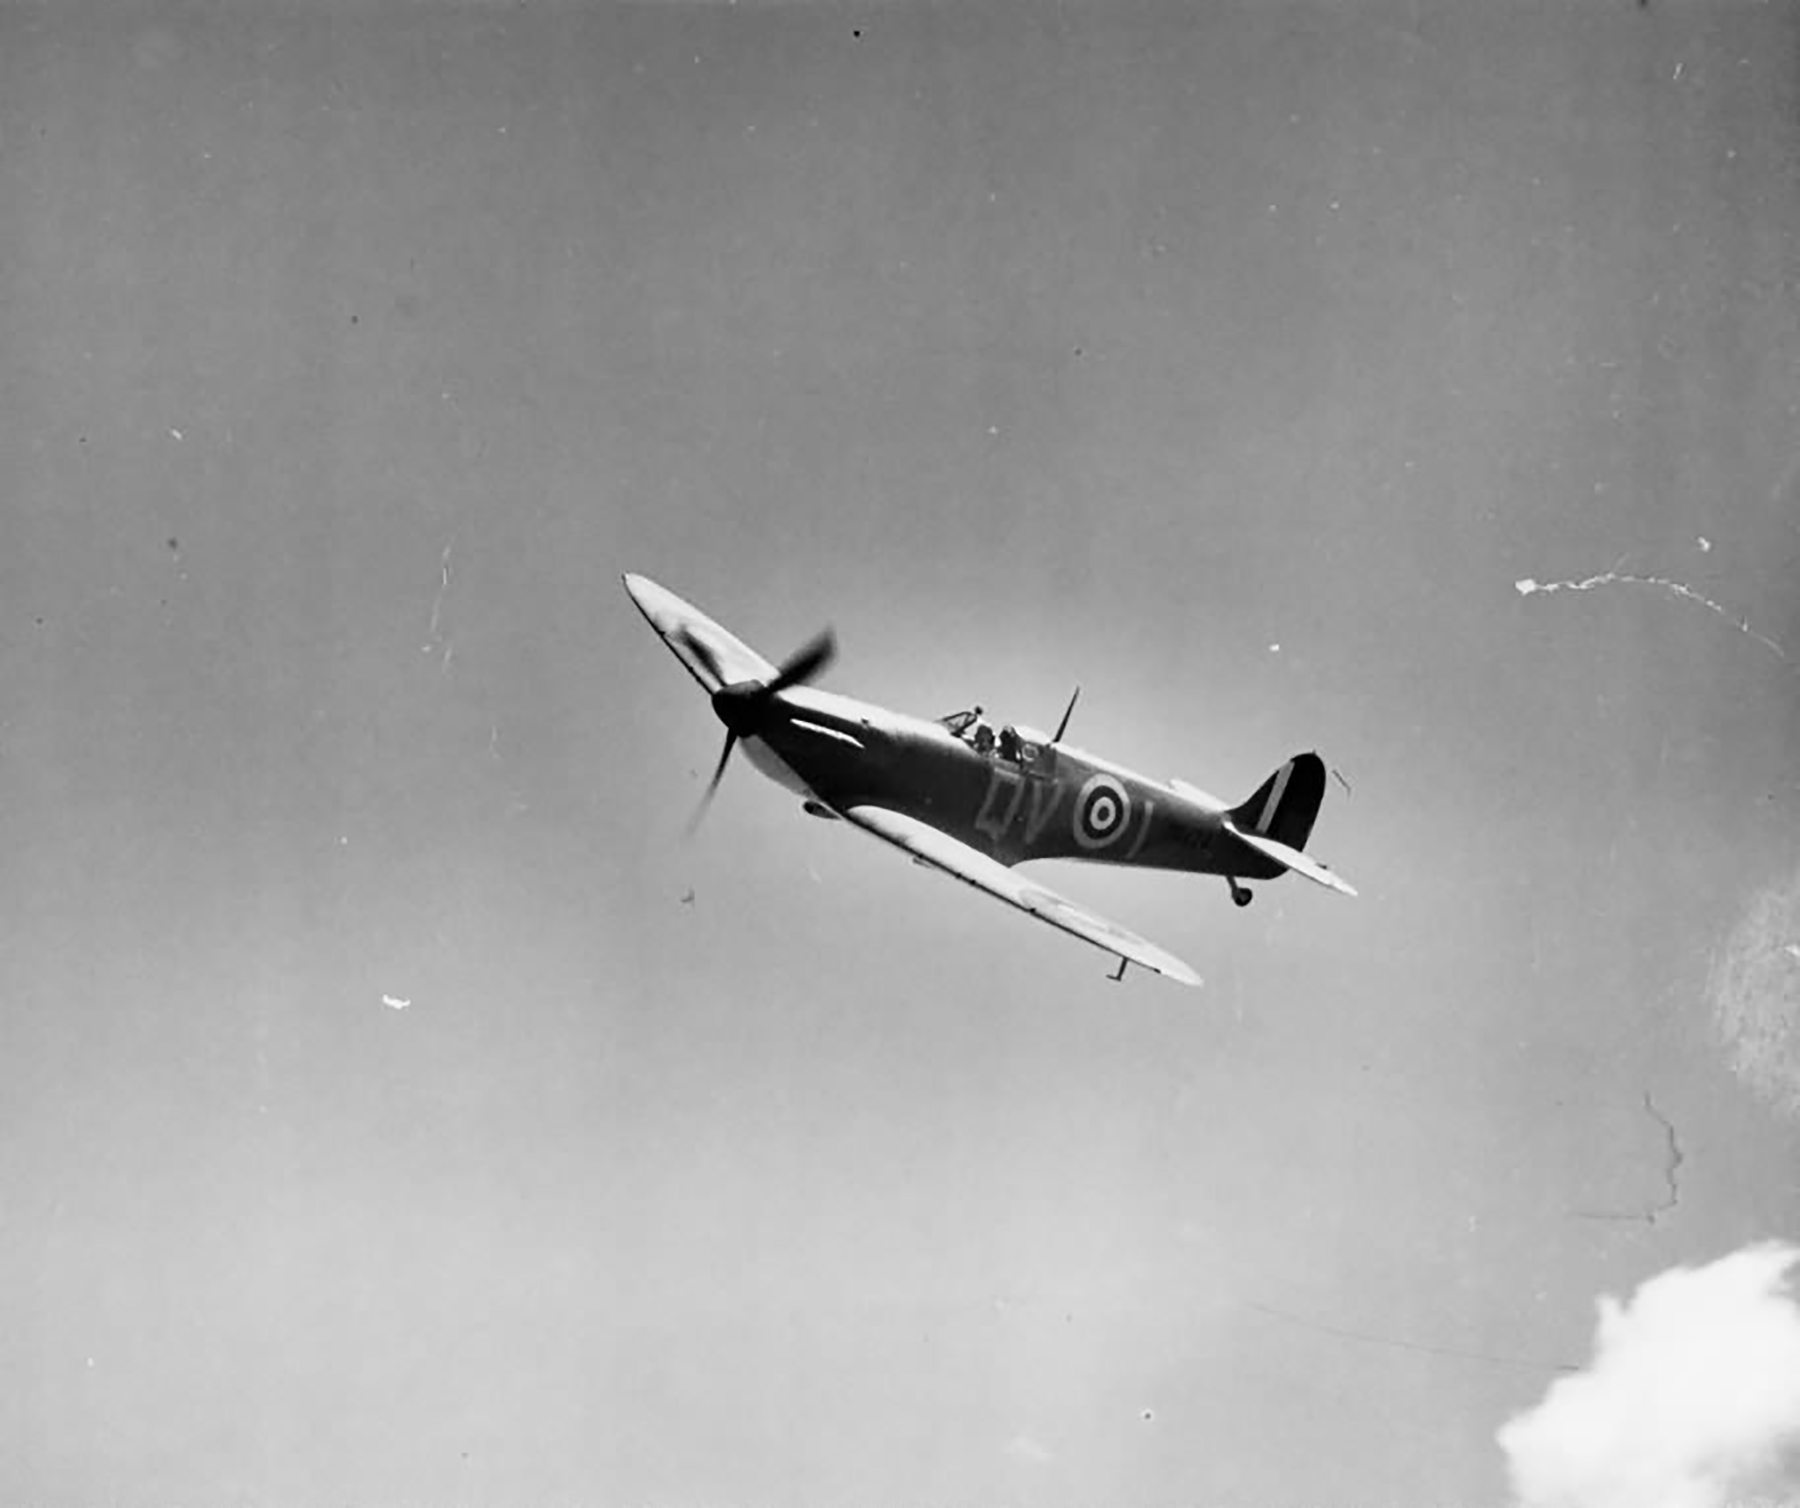 Spitfire MkIa RAF 19Sqn QVI Sgt Jennings X4474 over Fowlemere Sep 1940 web 01